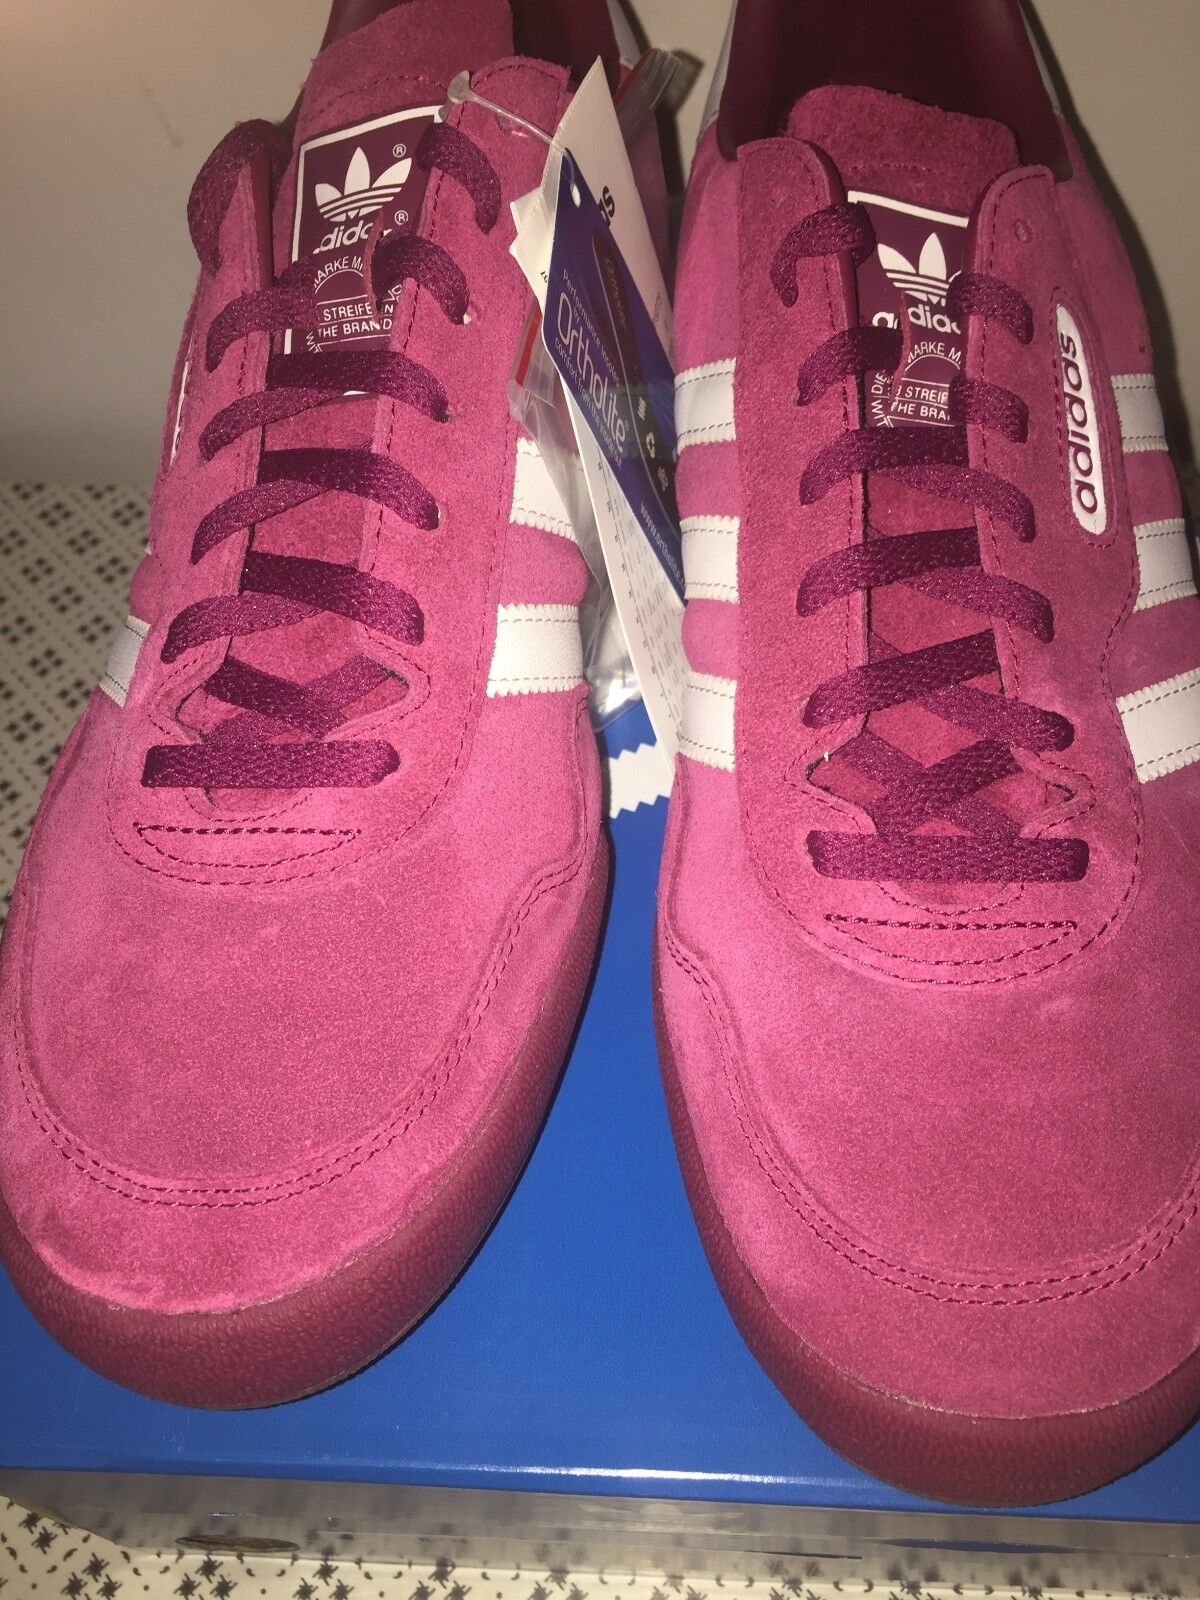 Adidas Ruby Originals Super Jeans Trainers UK 9 US 9.5 Ruby Adidas + Spare Laces Ortholite 729ab2